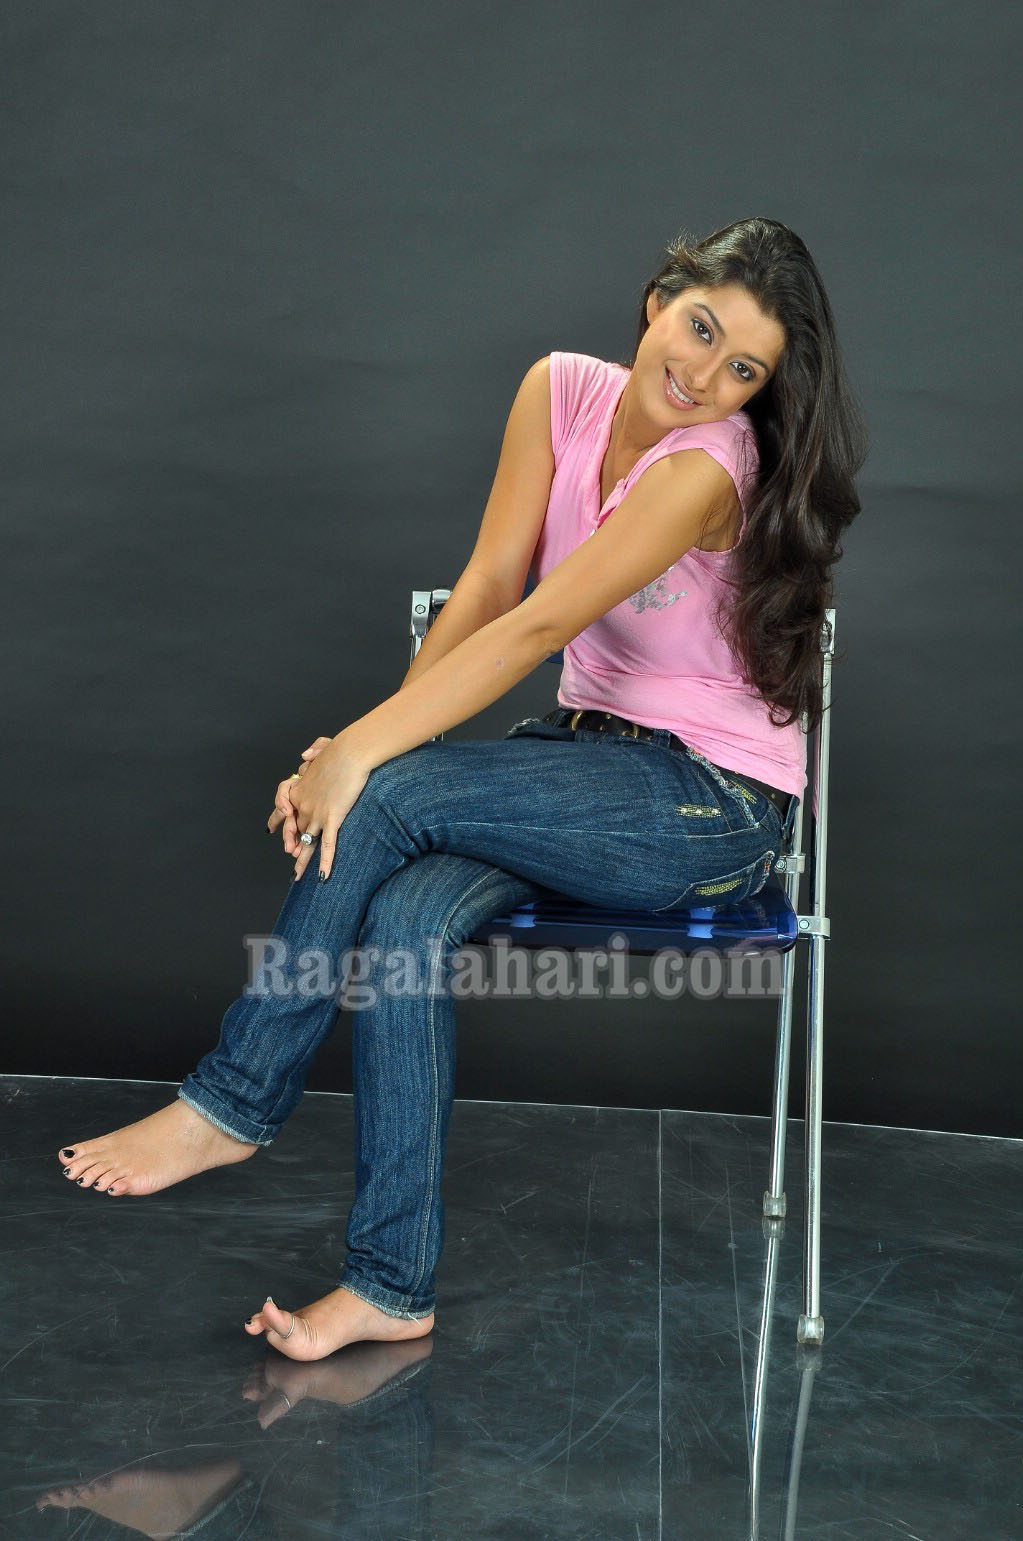 Madhurima Barefoot In Jeans Again Indian Celeb Bare Feet Beauties